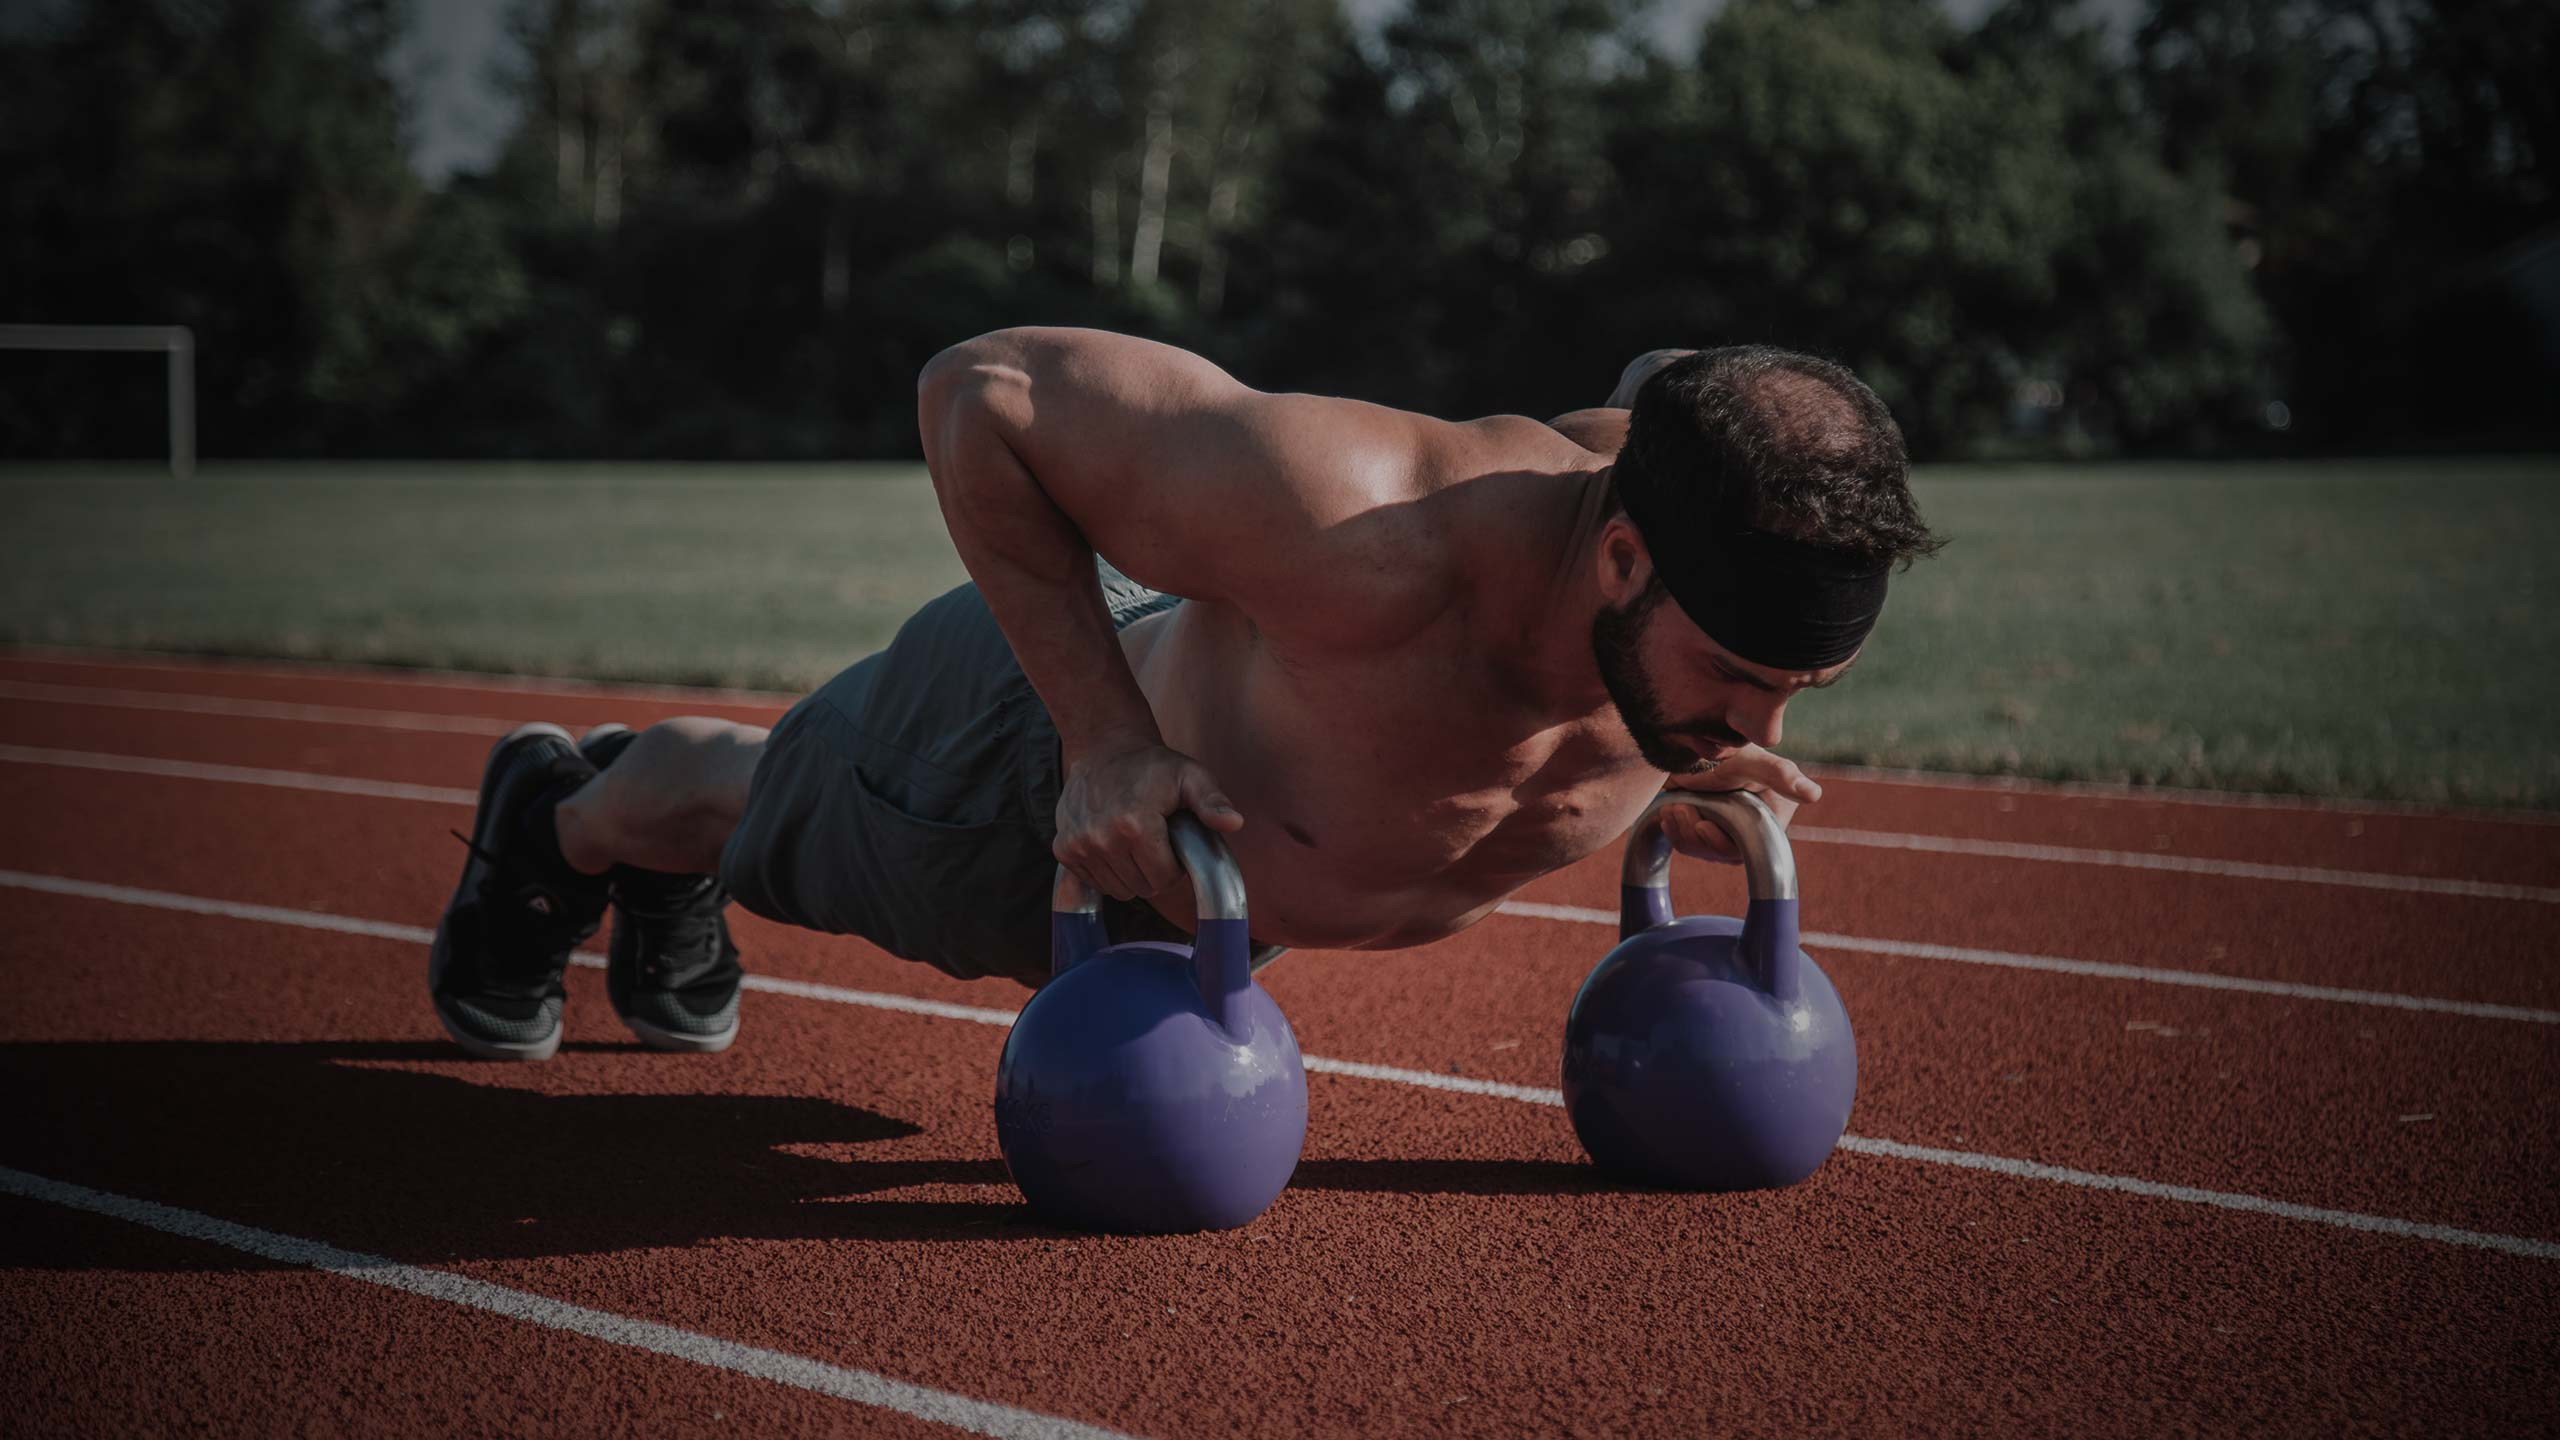 man doing pushups on sporting track field